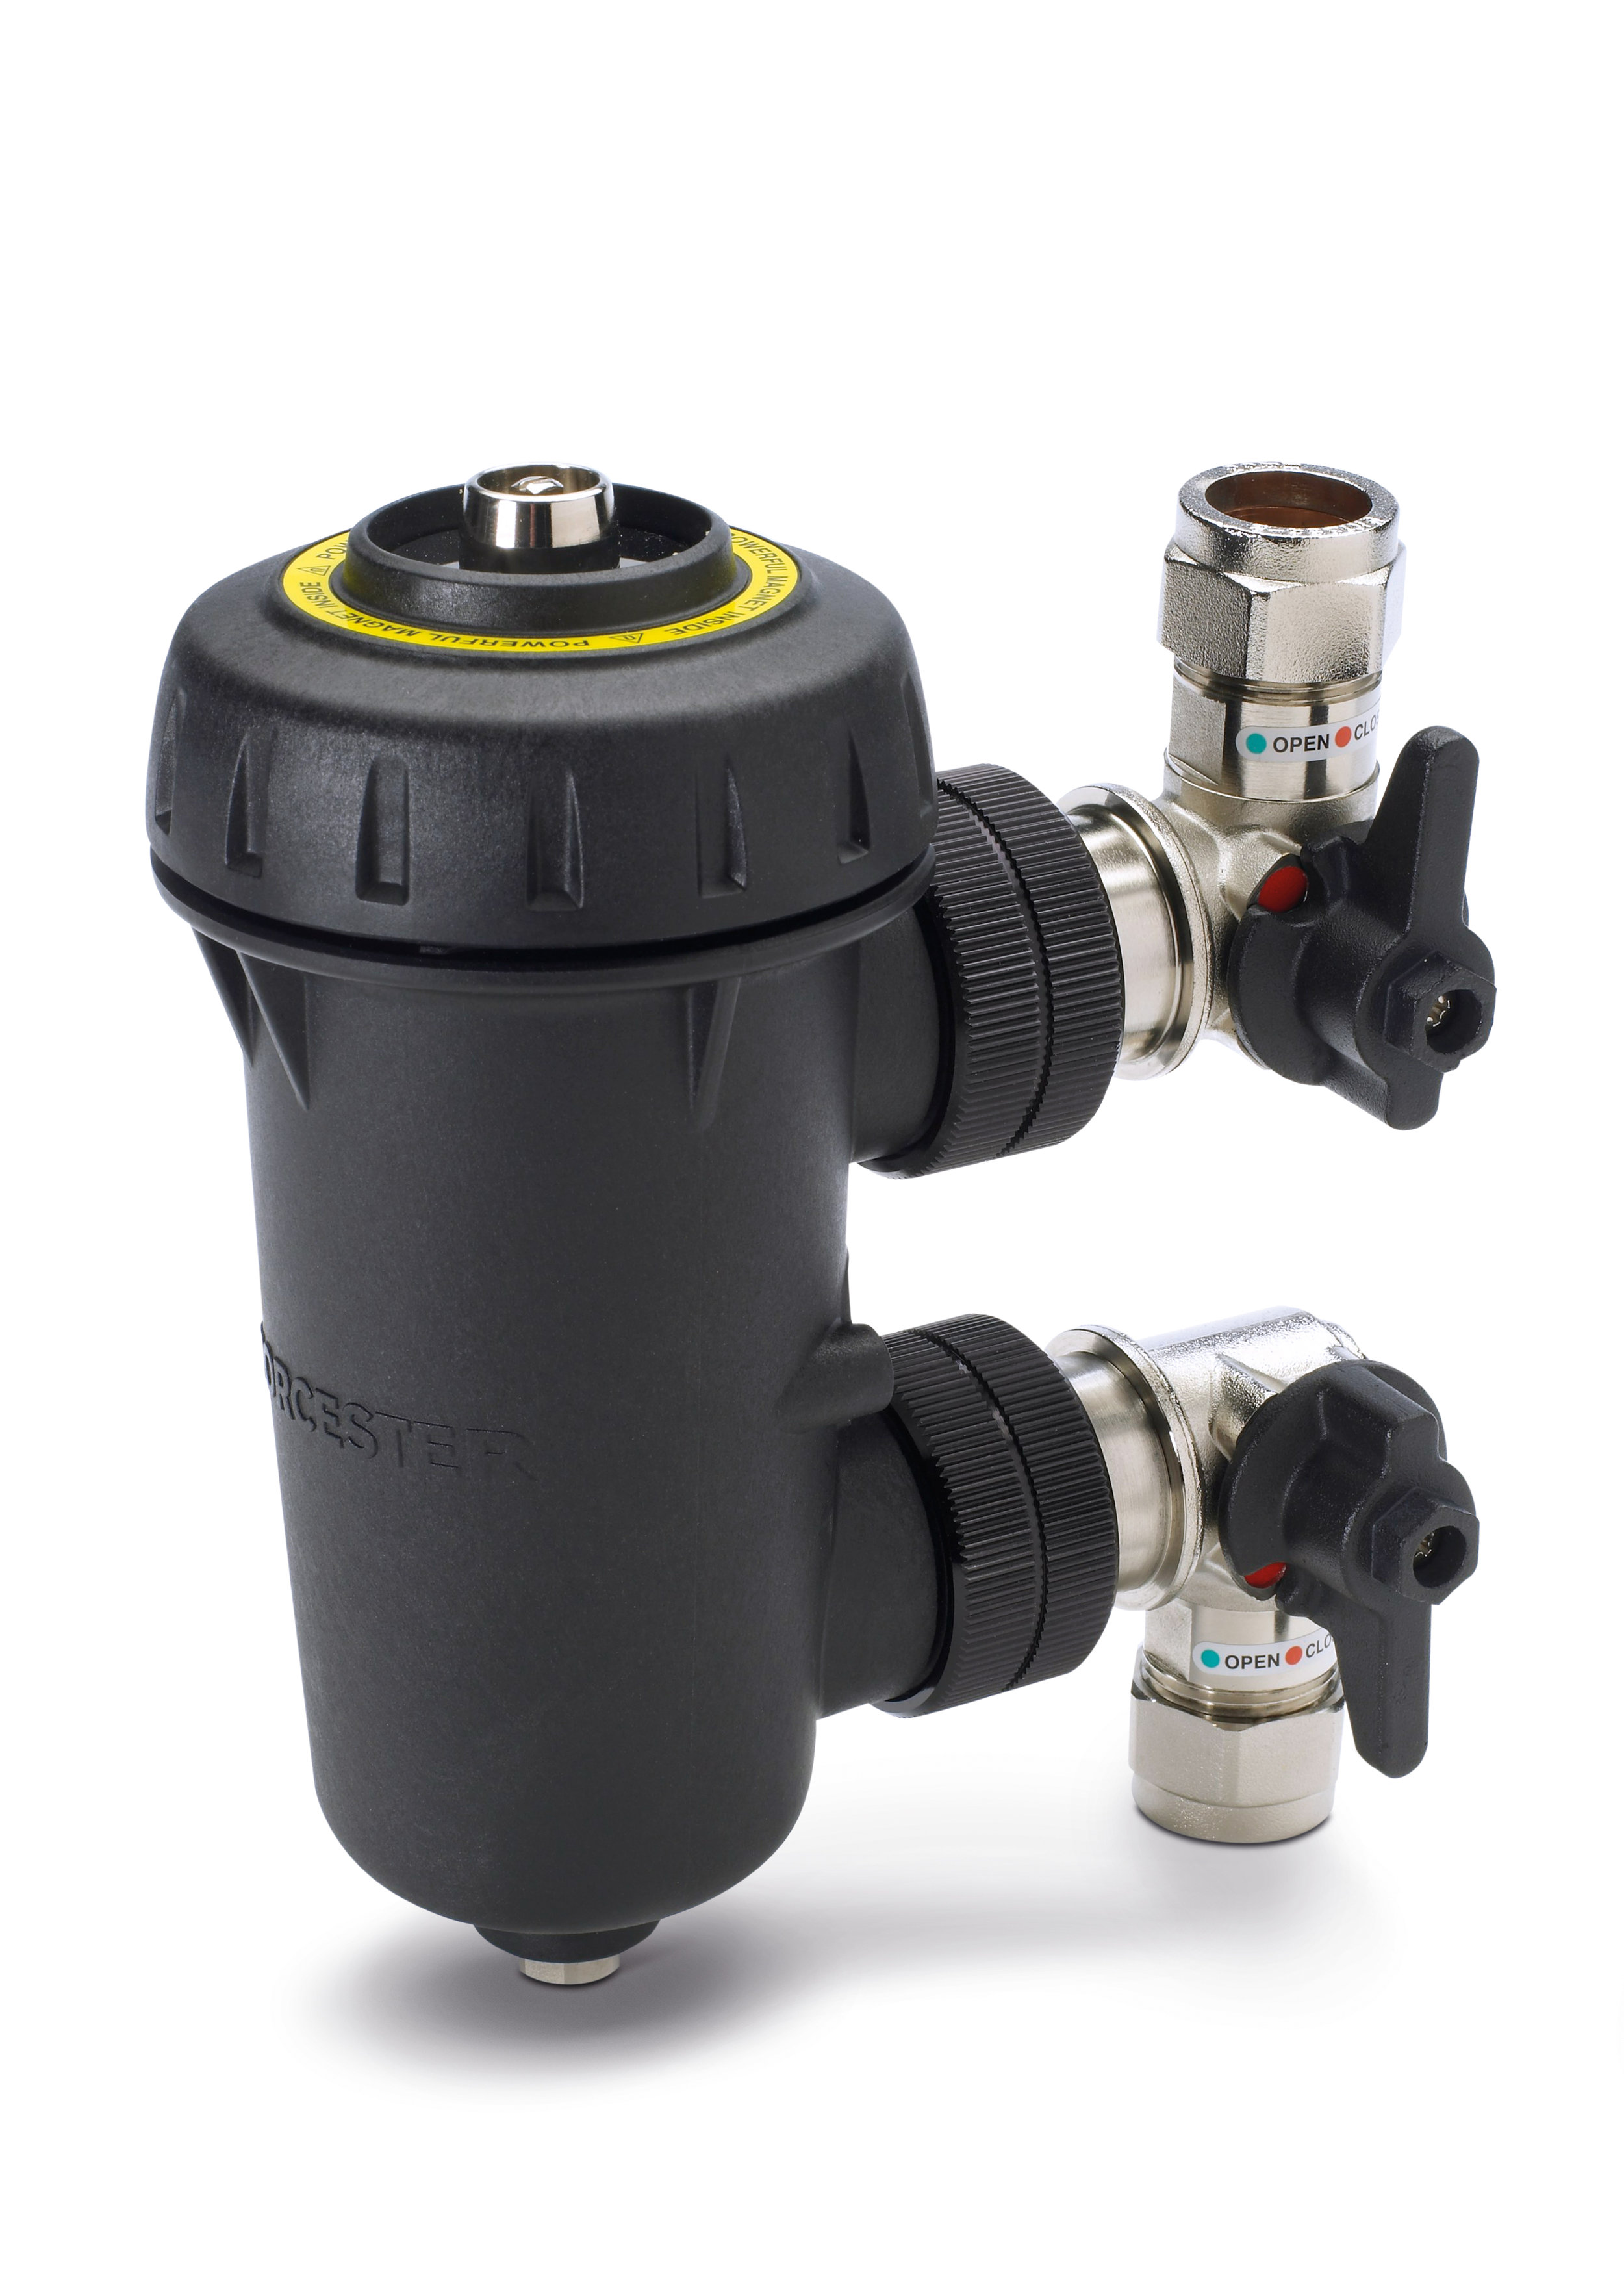 System Filter has been designed to combat the damaging effects of system debris and pollutants, allowing homeowners to protect their boiler or heat pump for a fraction of its cost. Over time, central heating system water accumulates harmful dirt and debris, such as rust and solder fragments shed by radiators and boilers, all of which can cause considerable problems. The accessory has a high powered internal magnet that can capture up to 300g of magnetic debris.